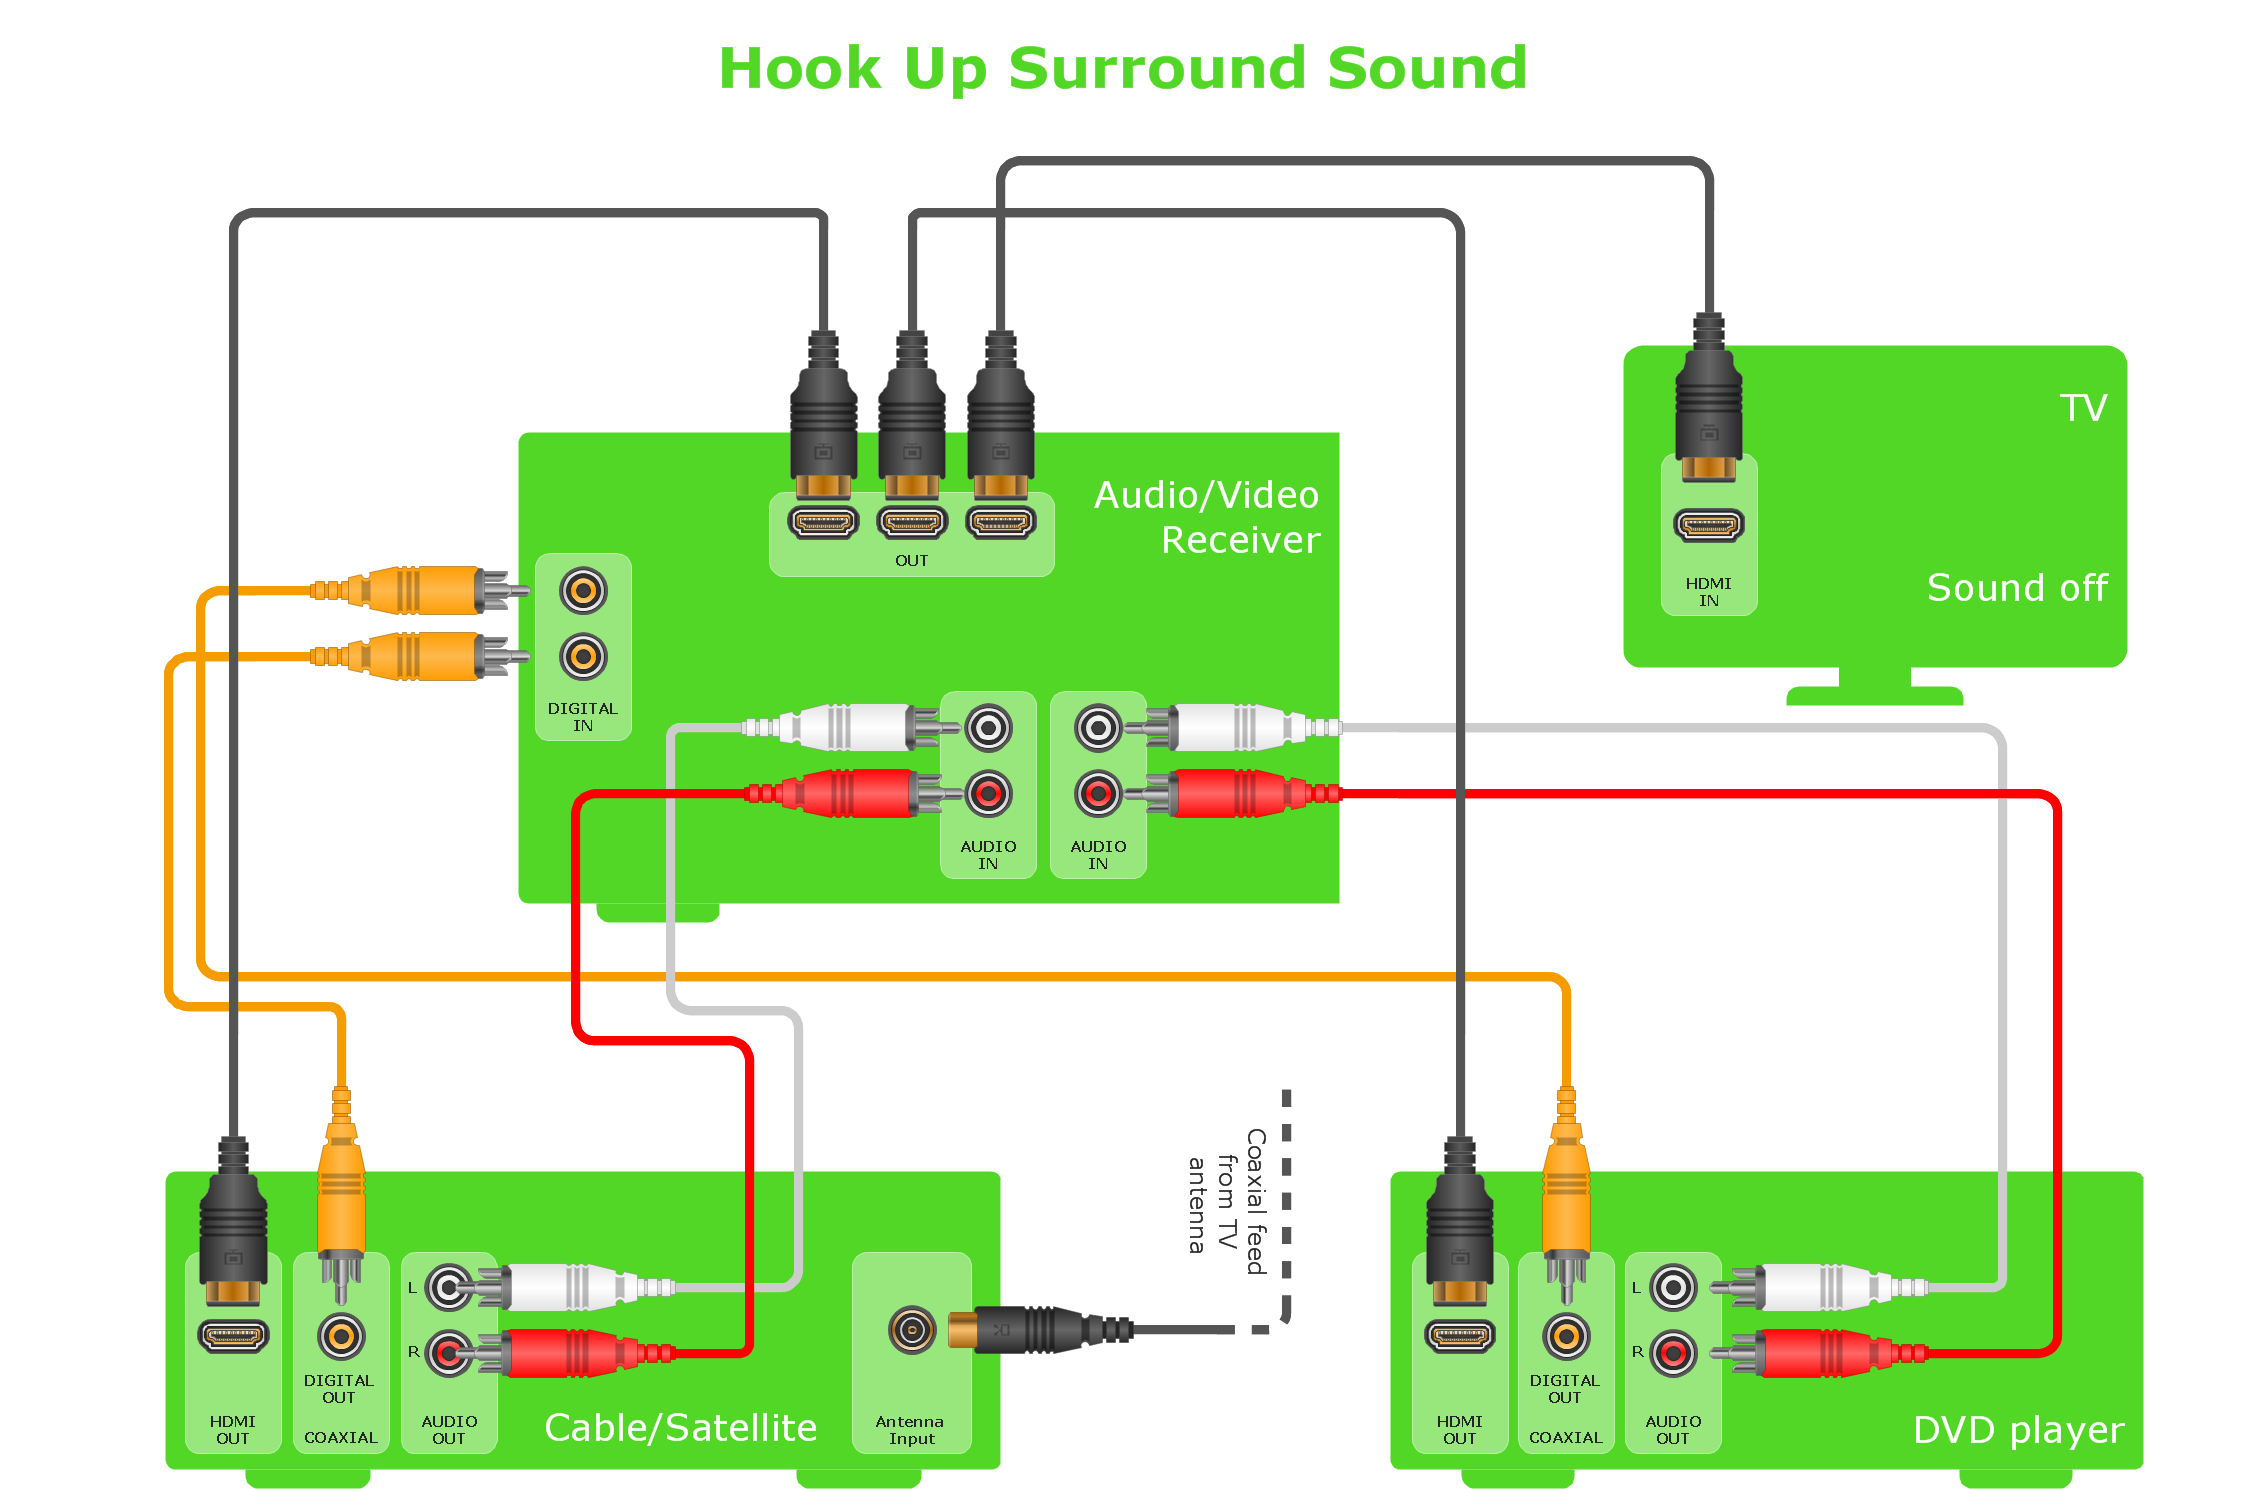 Hookup diagram - Home entertainment system with surround sound